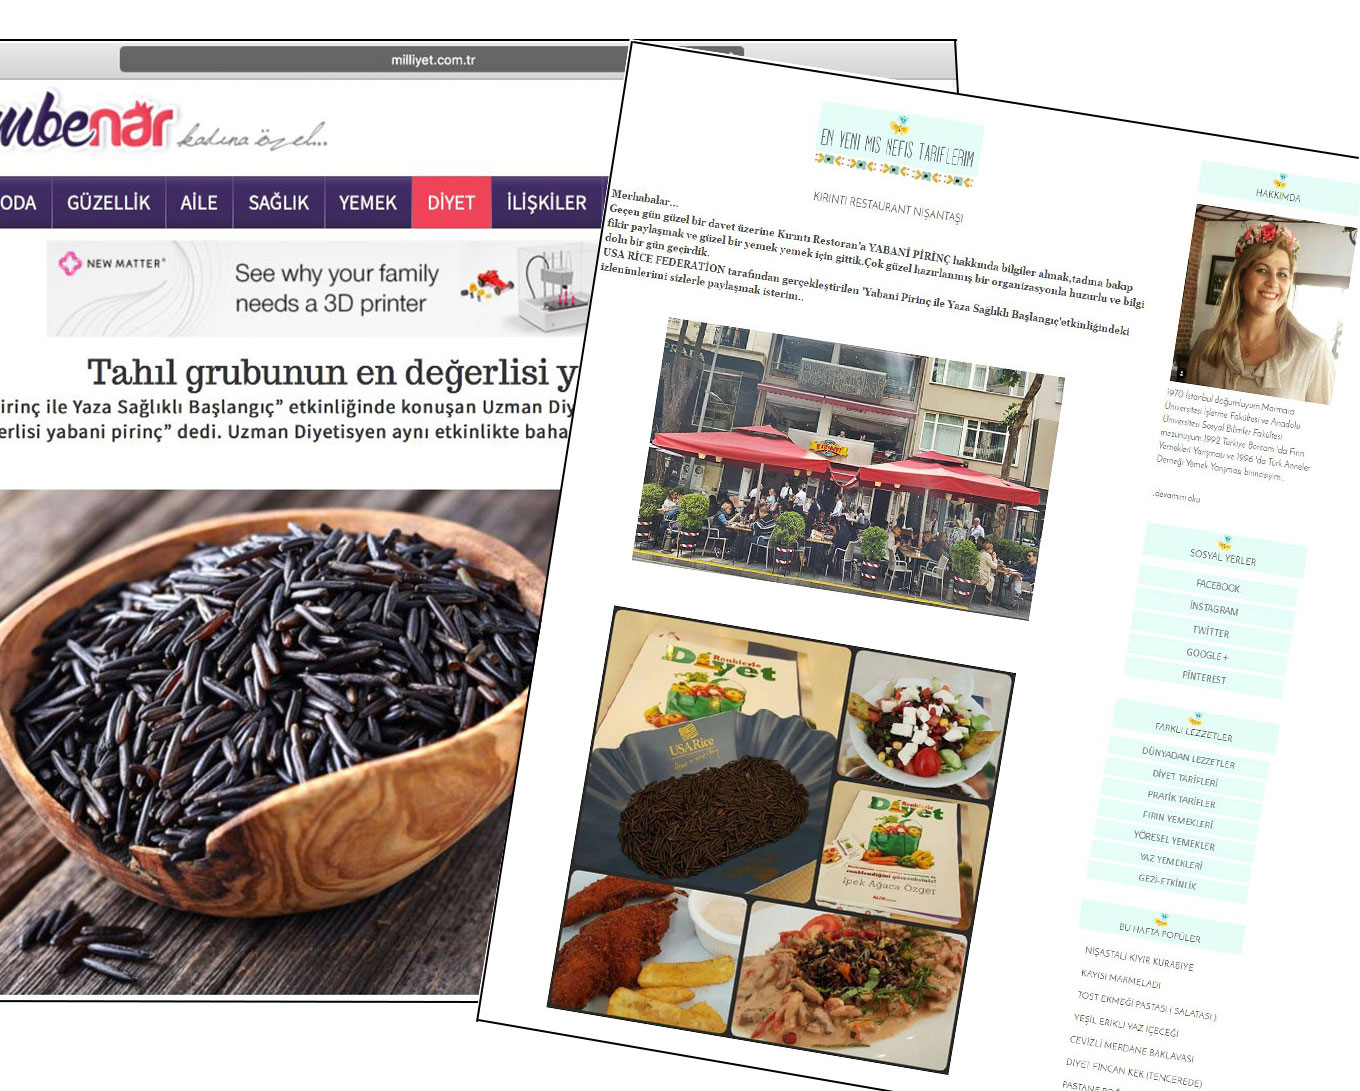 Images of wild rice blog posts in Turkey